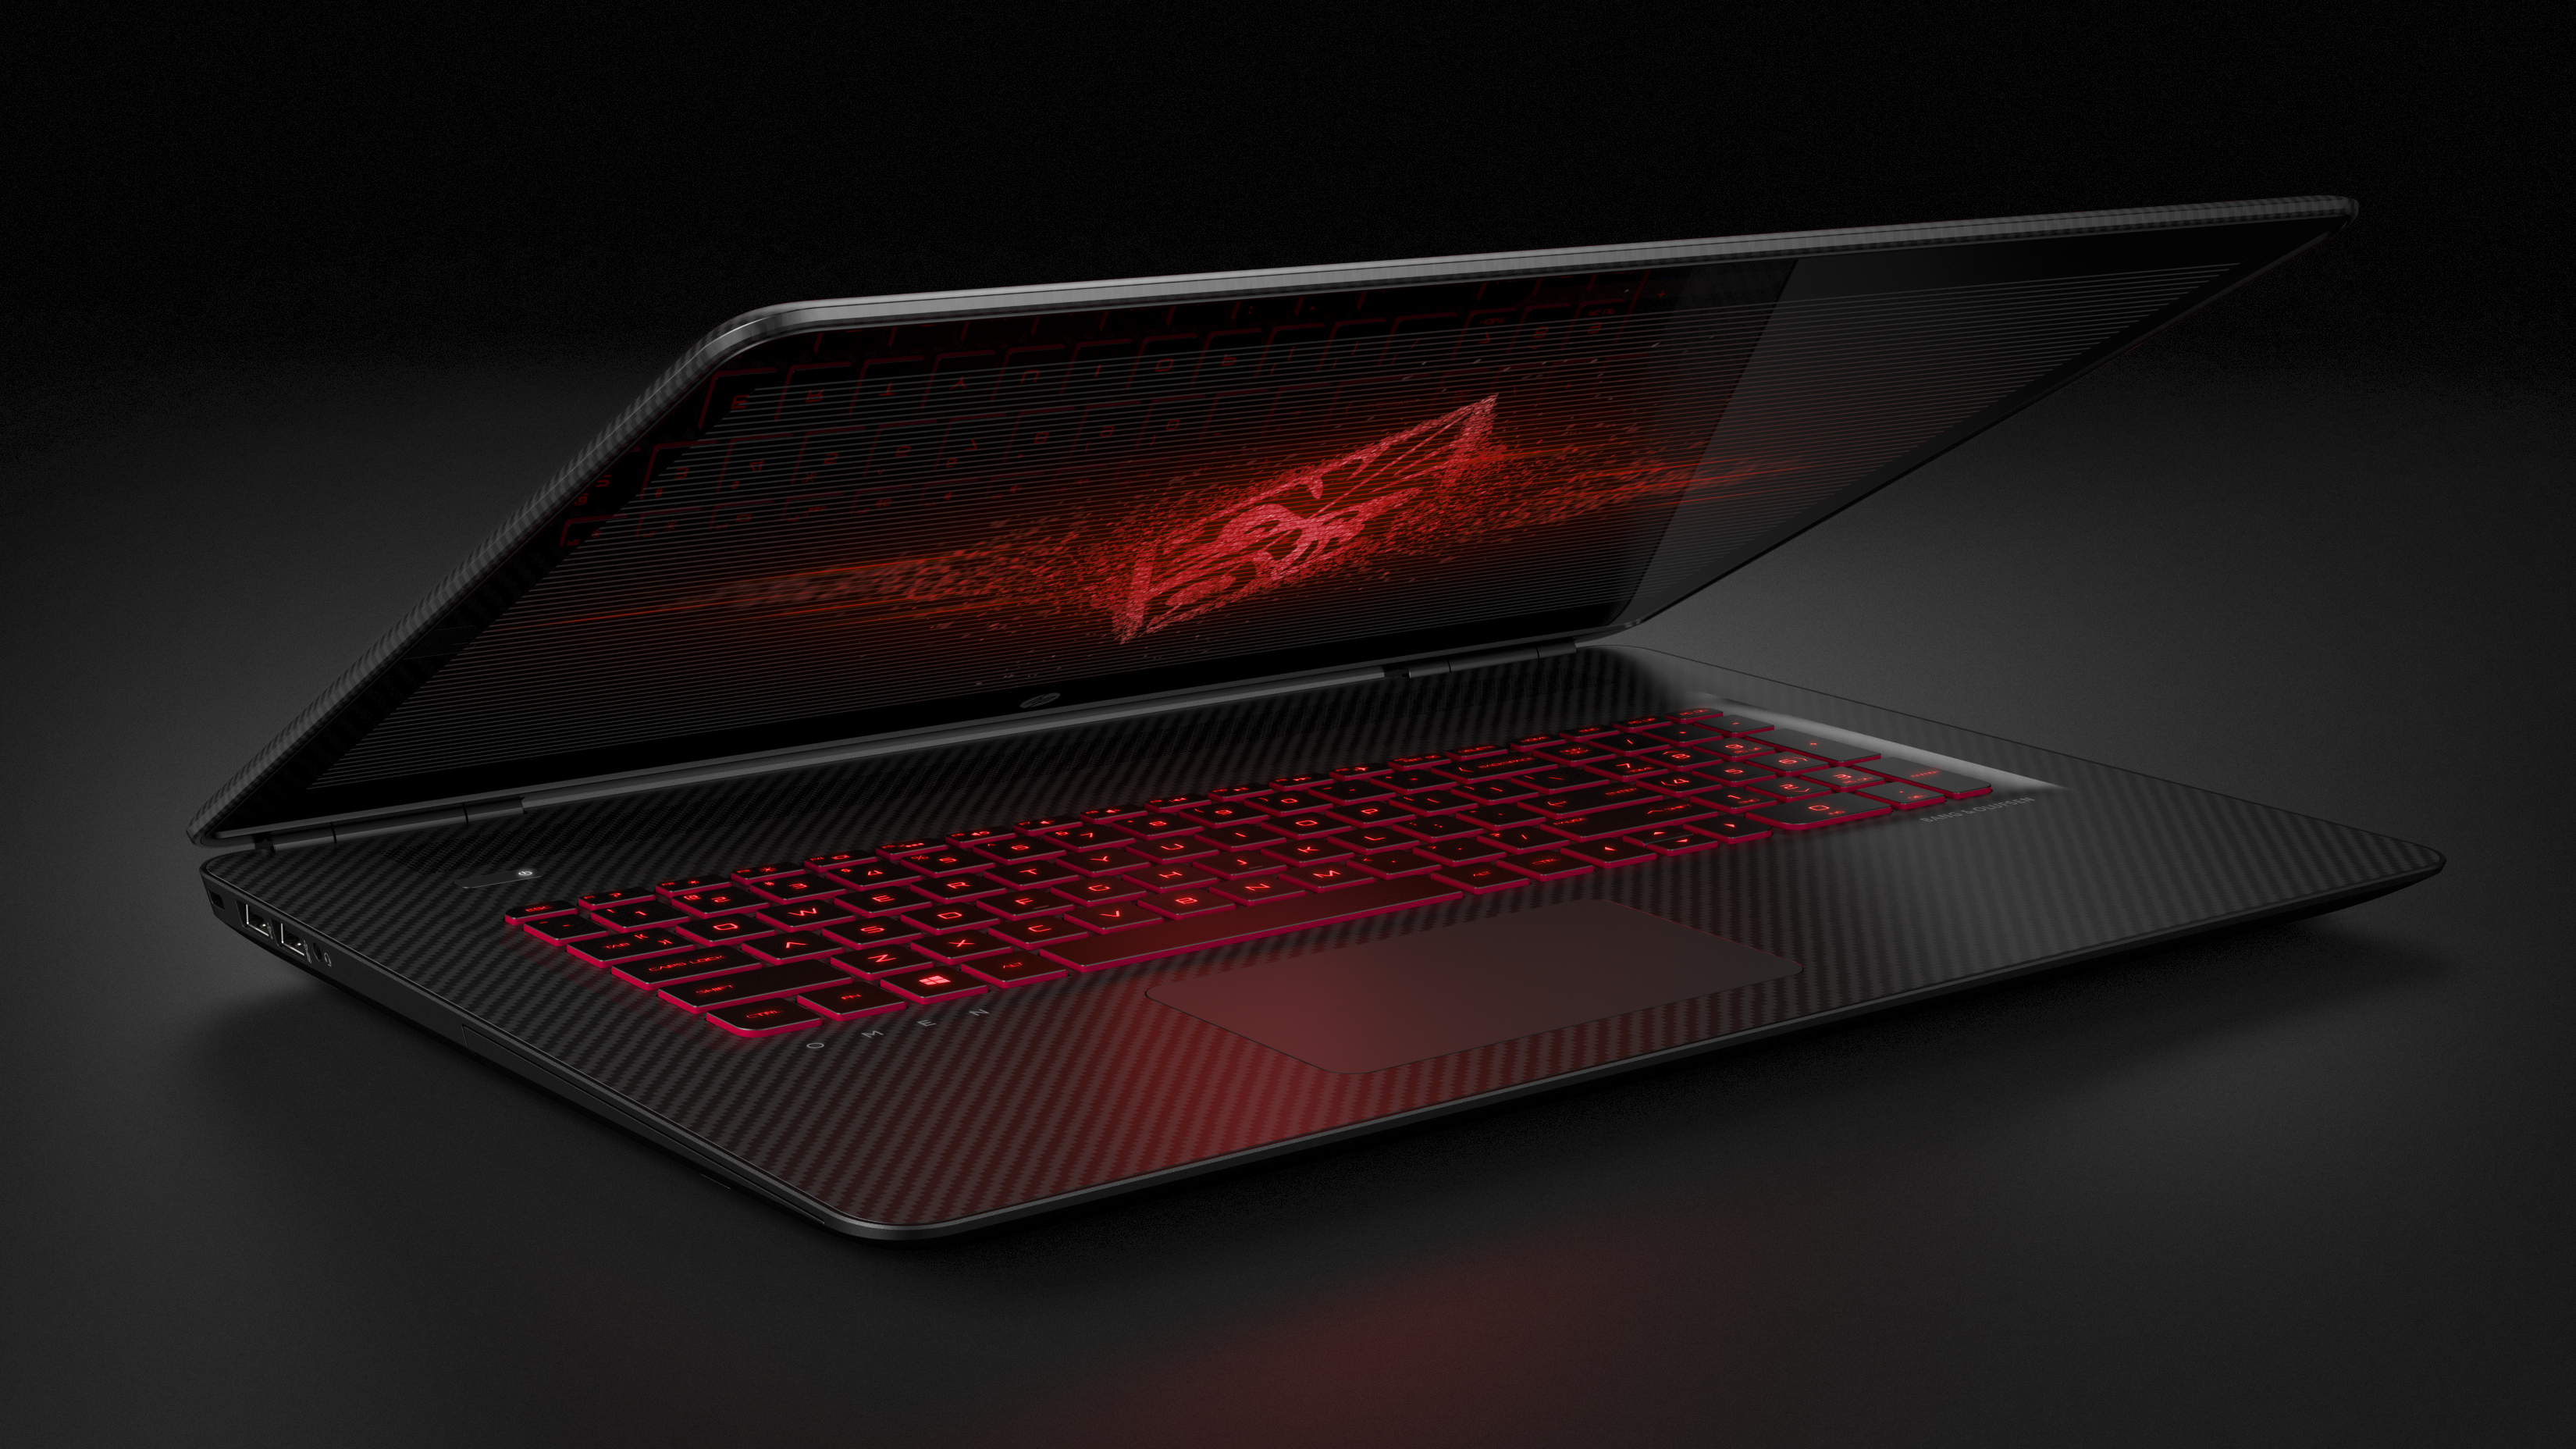 HP's Cyber Monday deals include the Omen 15t gaming laptop